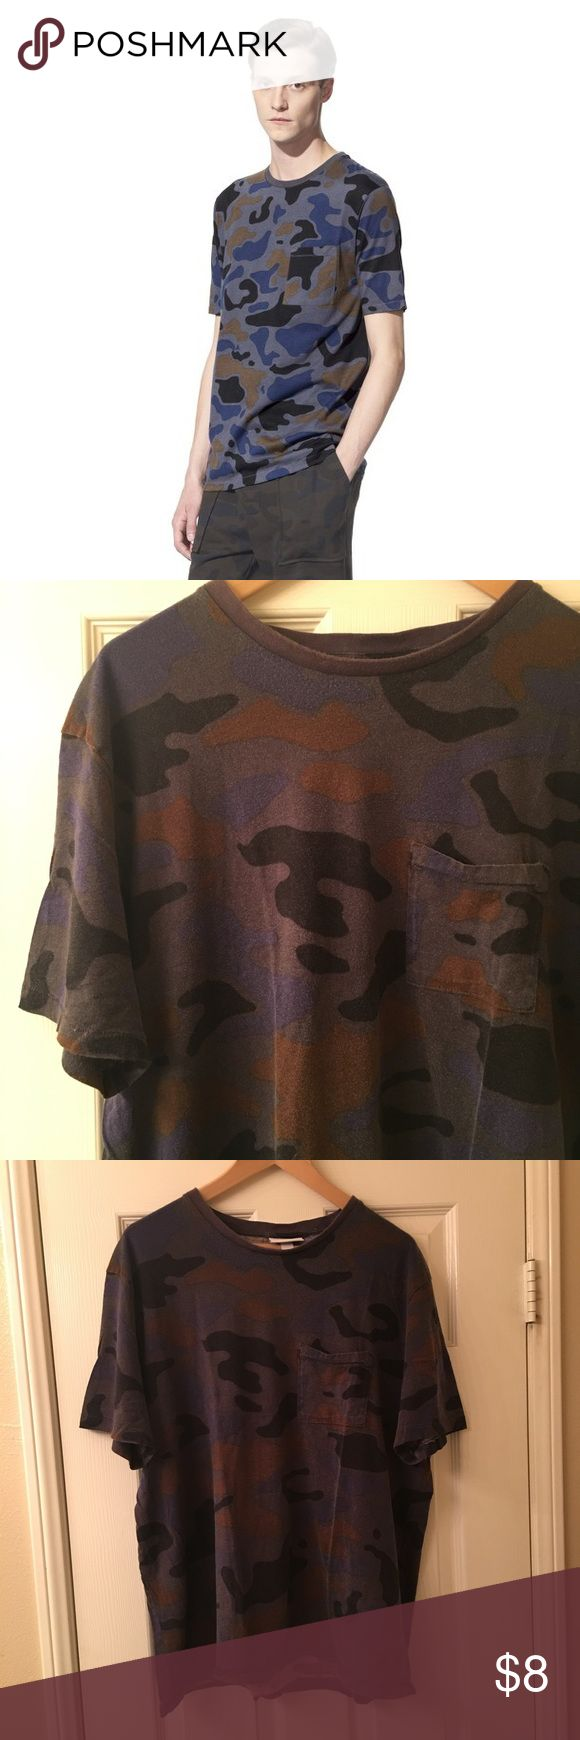 Philip Lim x target camo shirt Preowned XL Philip Lim x Target Collaboration with no rips and stains. Fading from washing but still a good look with the fade. Fits true to size for men but I've seen women wear and this is a limited edition run. 3.1 Phillip Lim for Target Shirts Tees - Short Sleeve